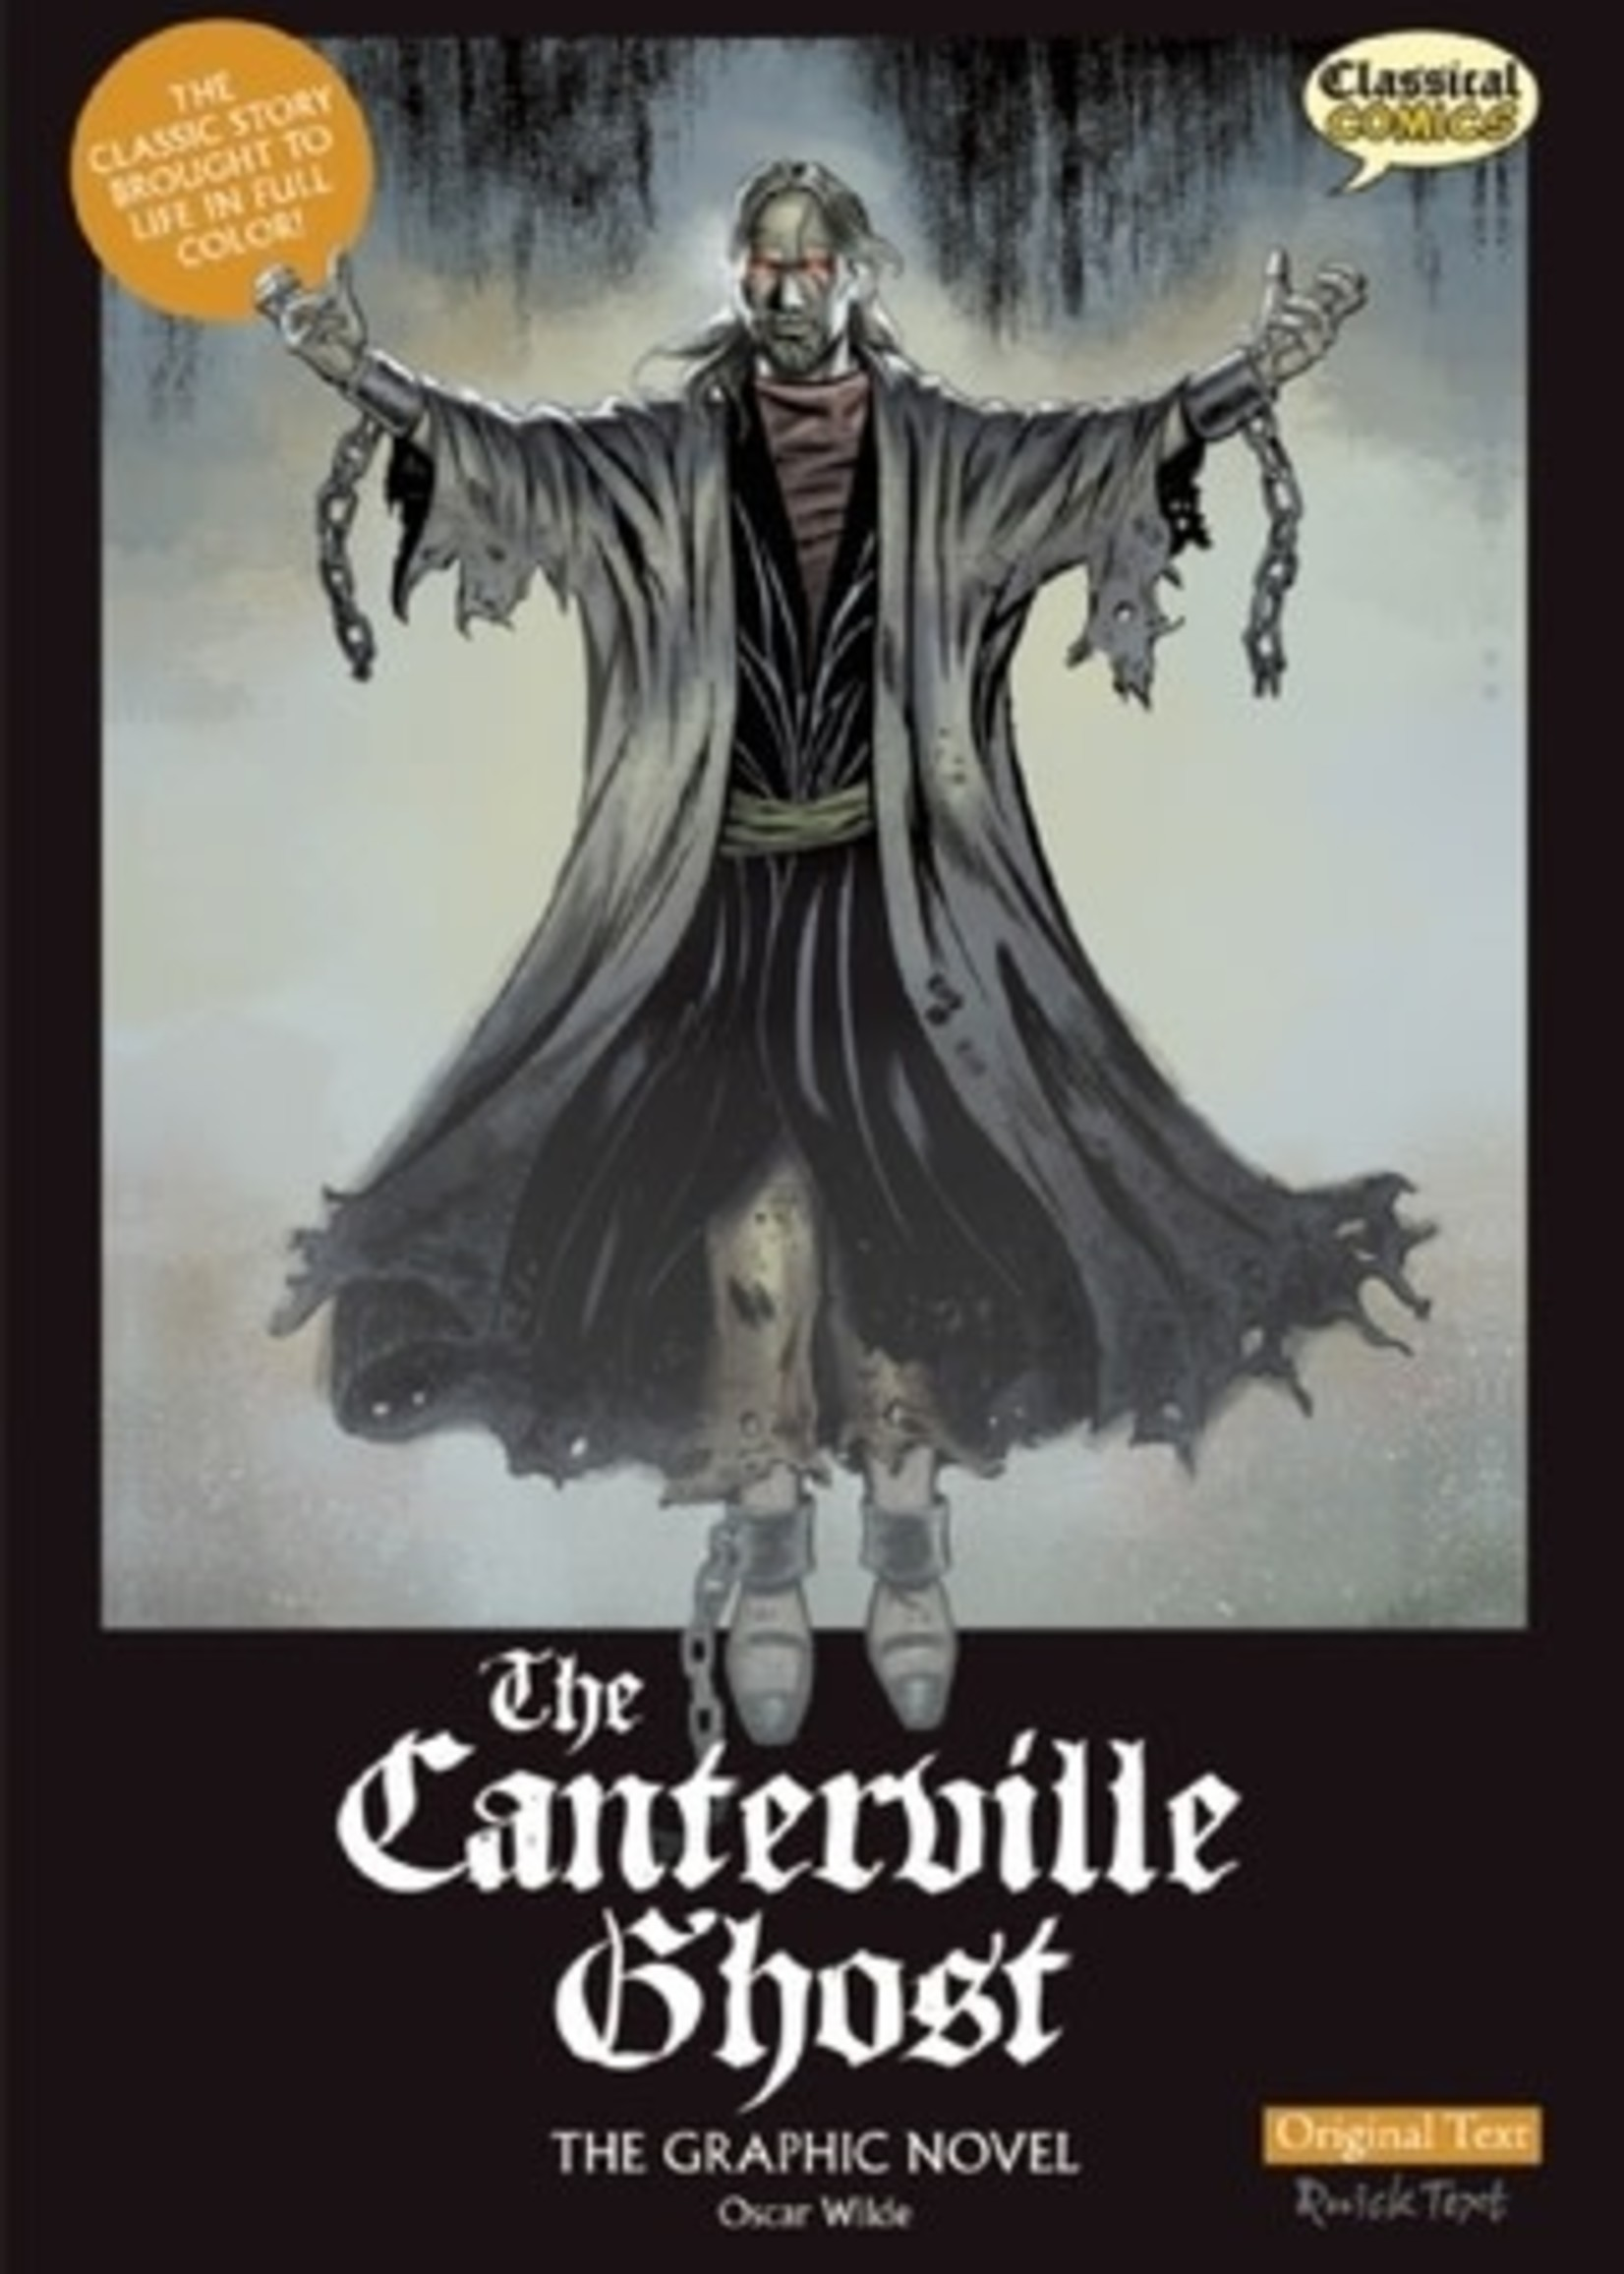 The Canterville Ghost: The Graphic Novel by Oscar Wilde